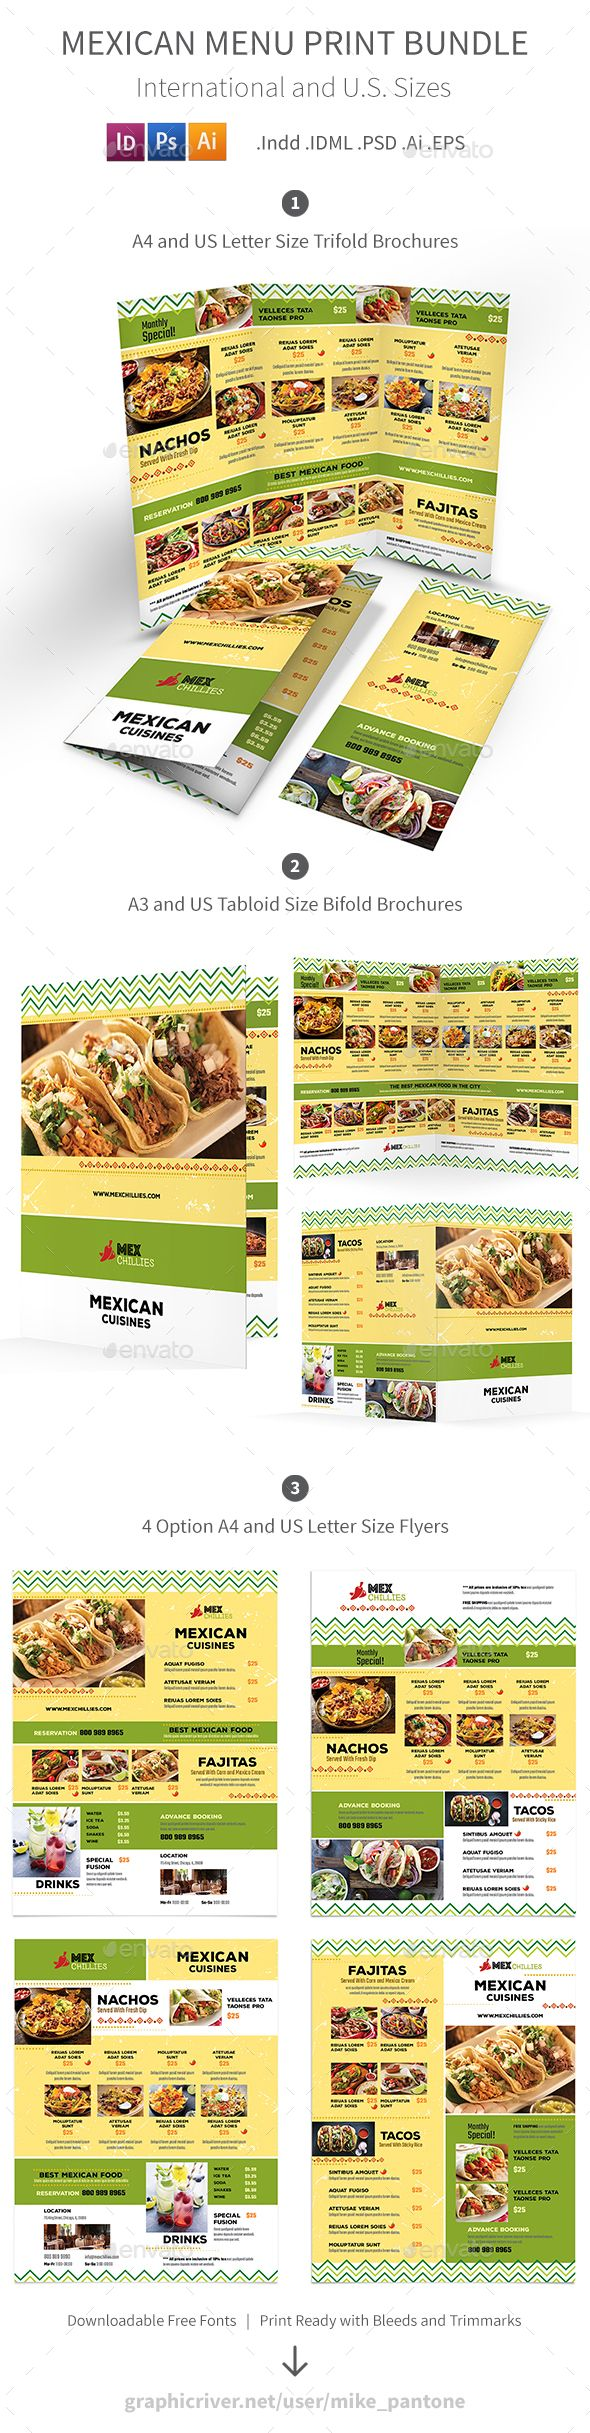 Mexican Restaurant Menu Print Bundle 2 Food Menus Print